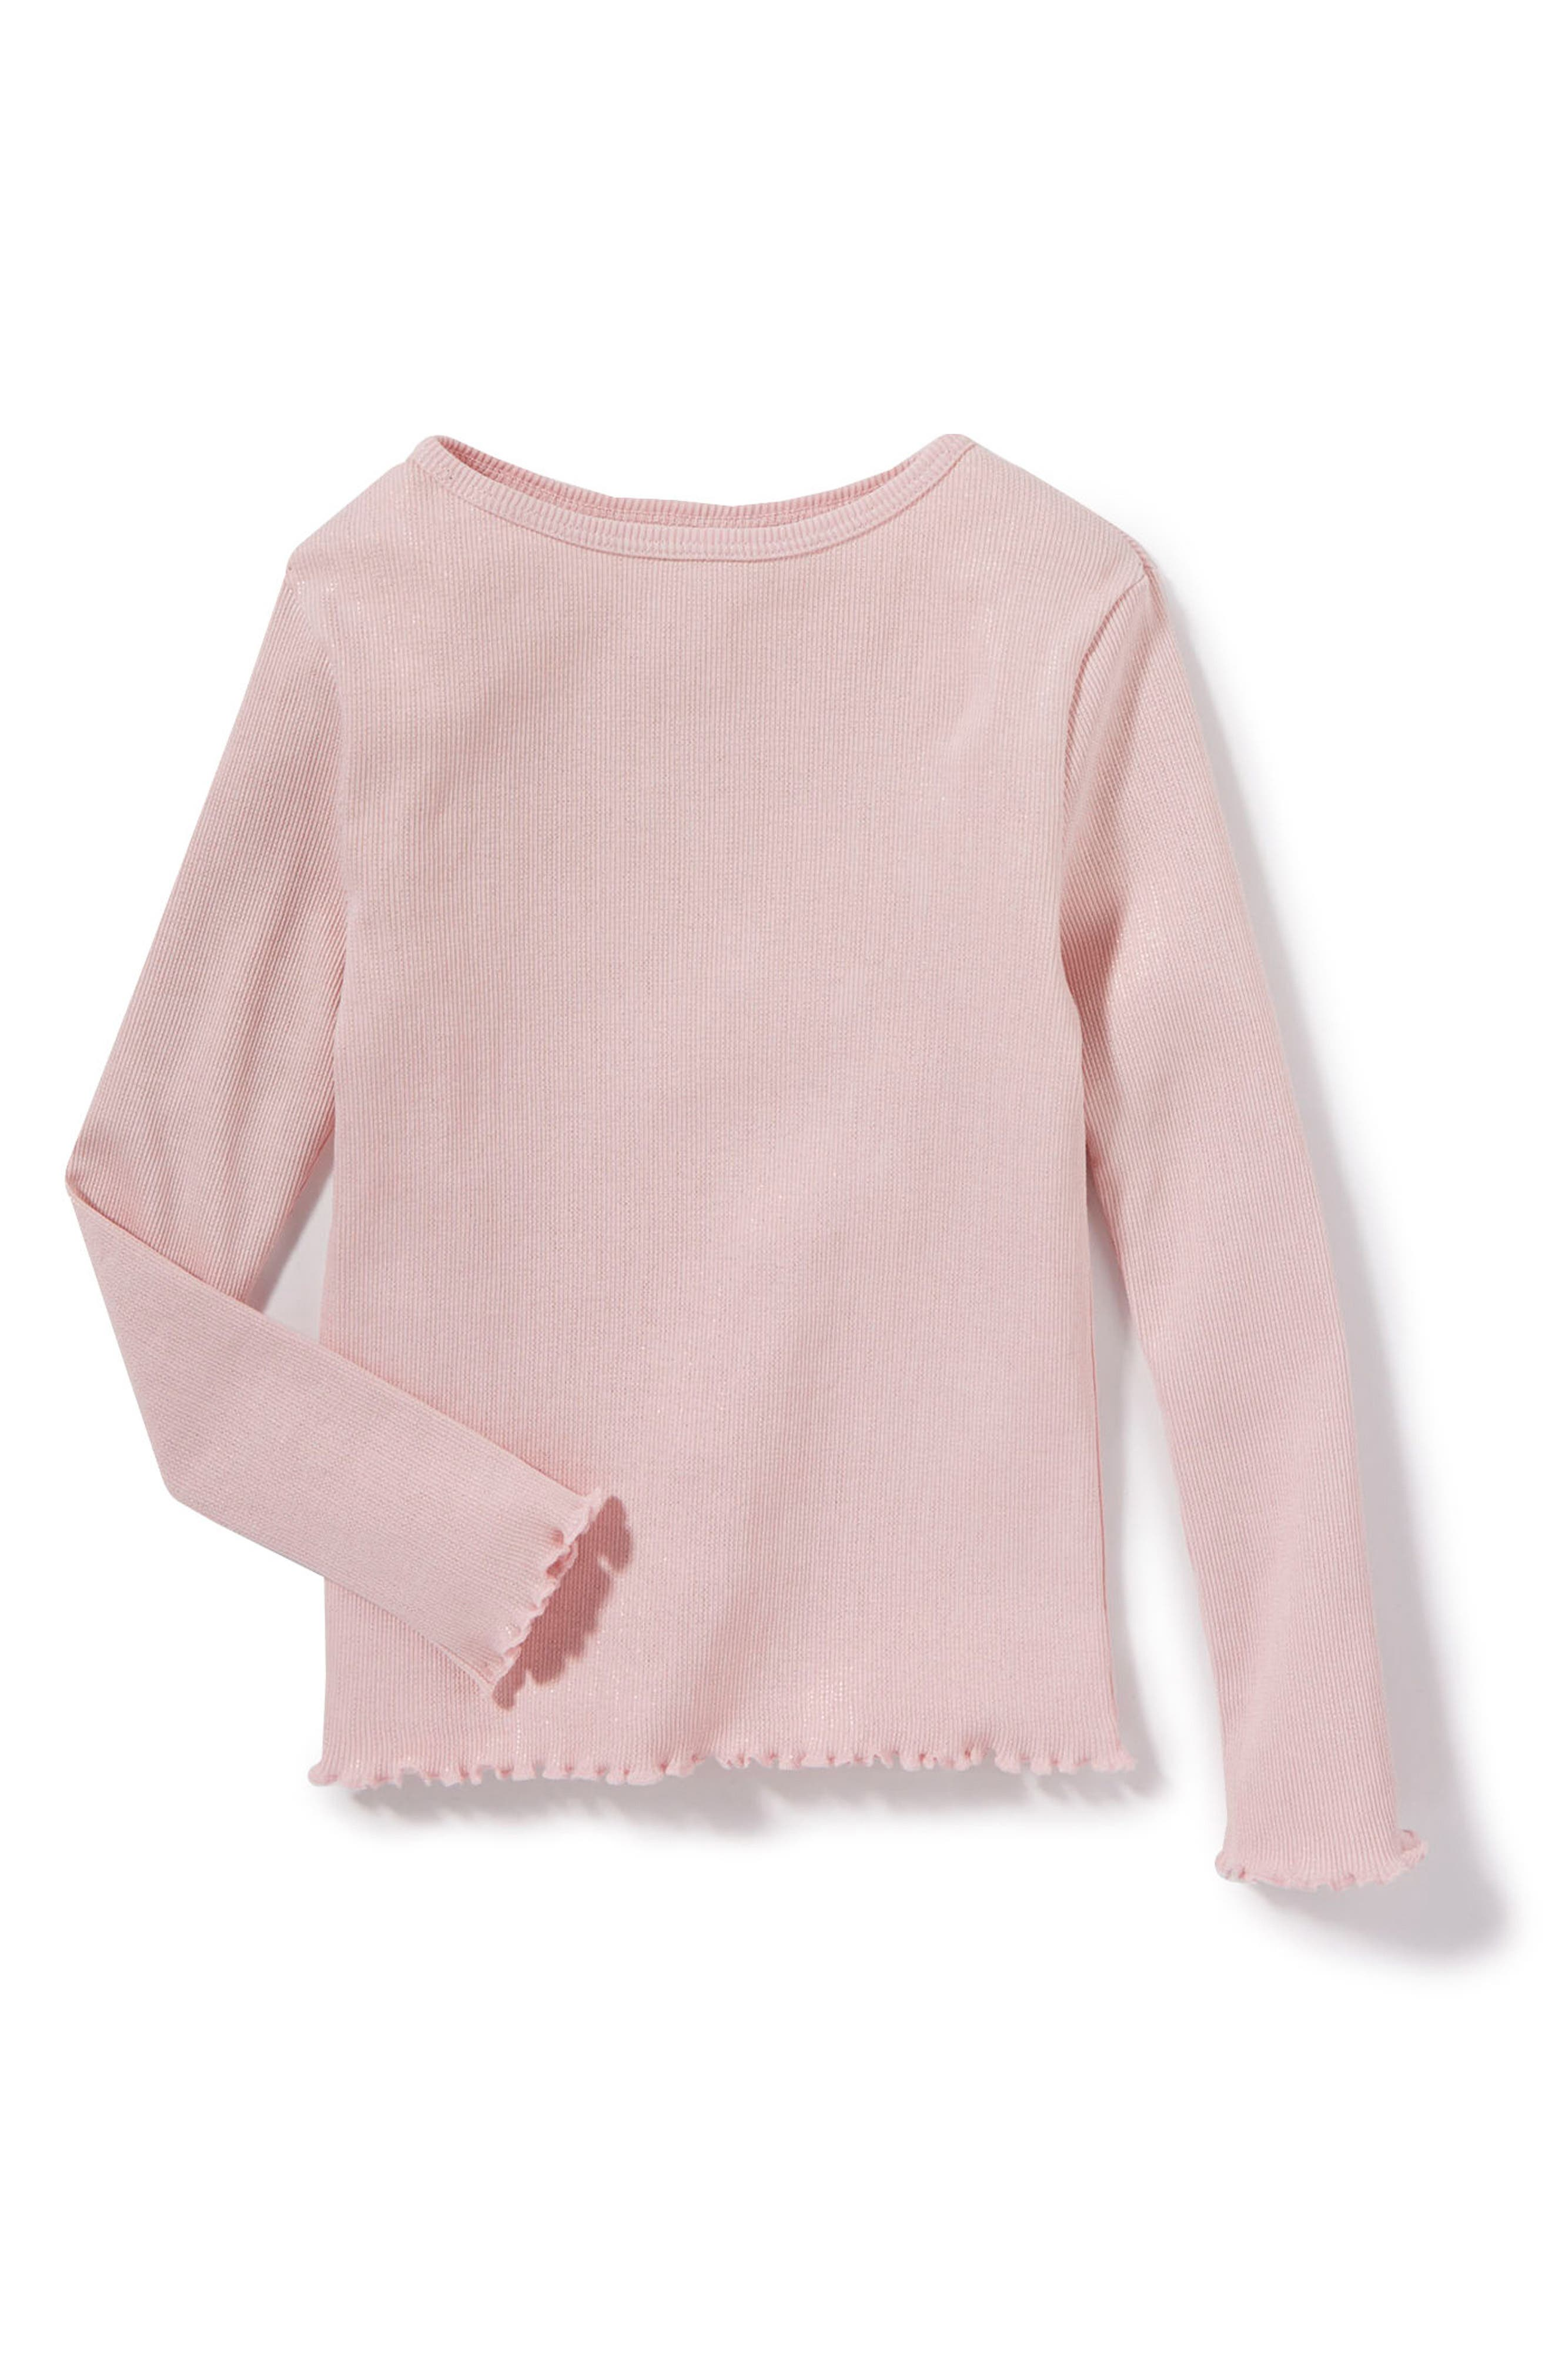 Marie Tee,                         Main,                         color, Pink